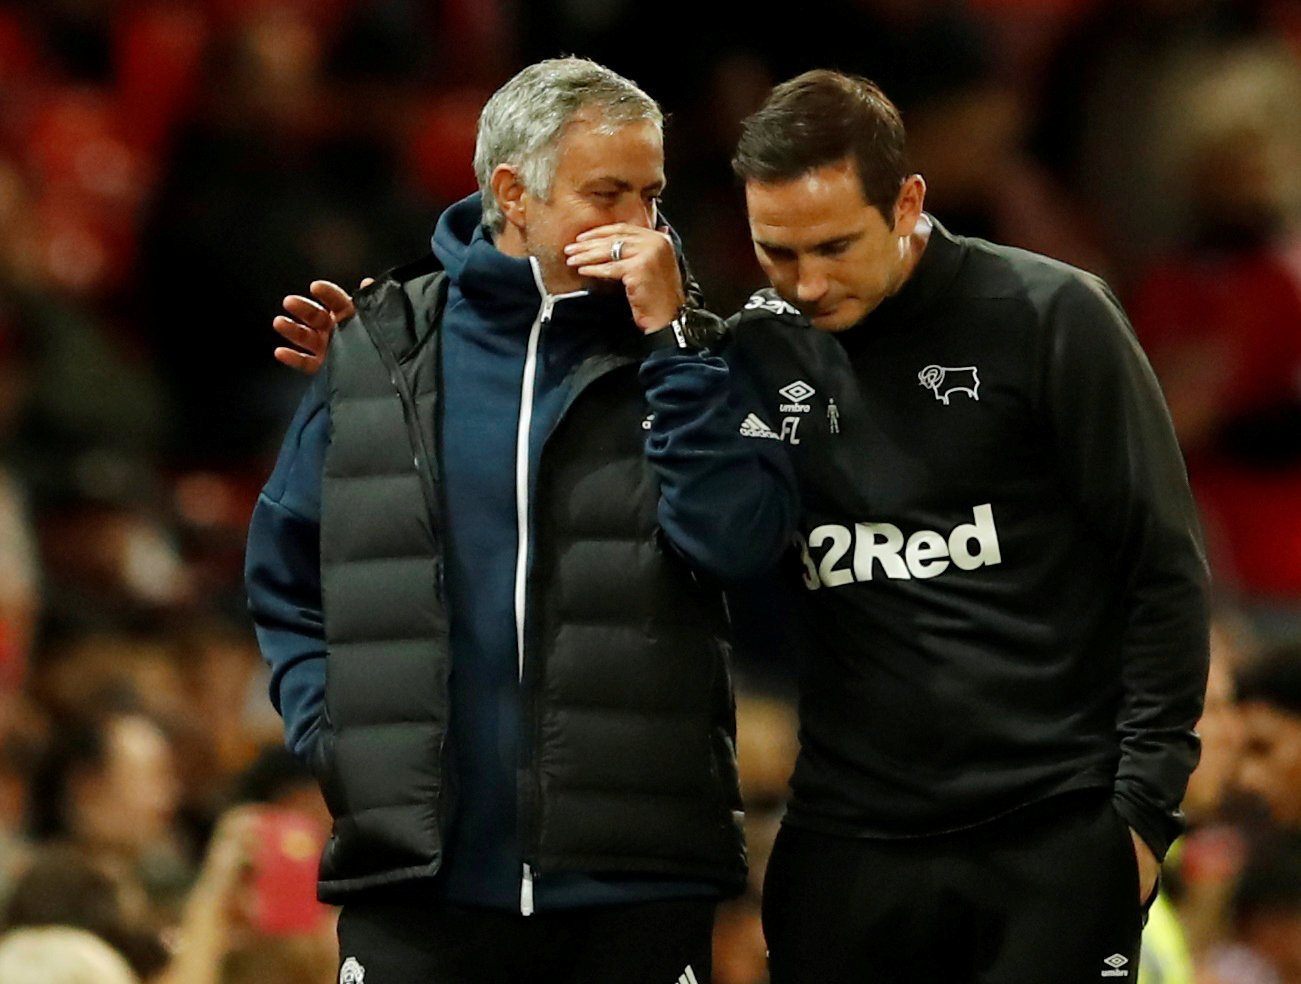 Frank Lampard Takes A Jibe At Jose Mourinho Over His New Position